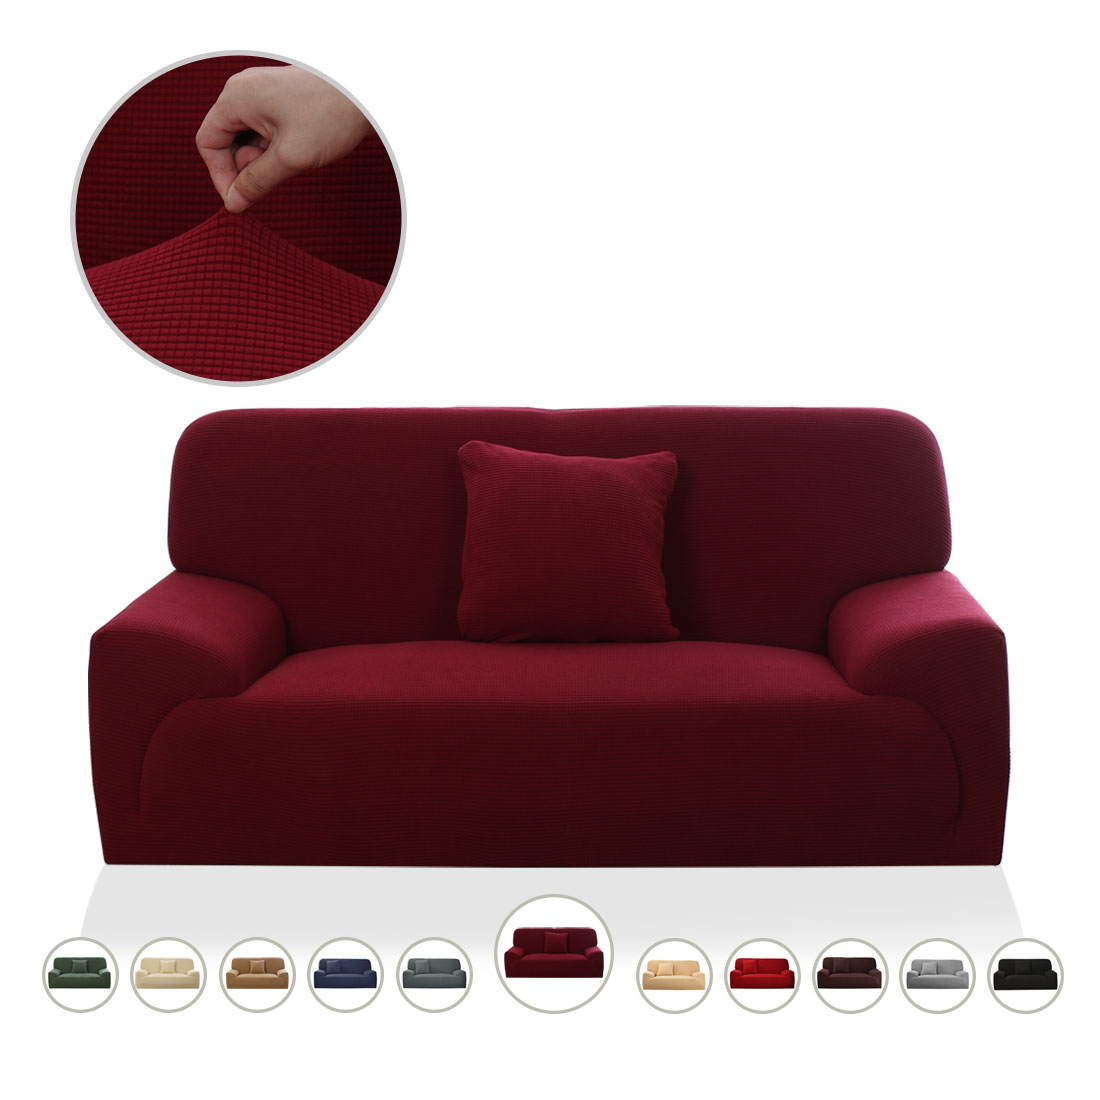 PiccoCasa Stretch Jacquard Furniture Sofa Covers Slipcovers for 1 2 3 4 Seats